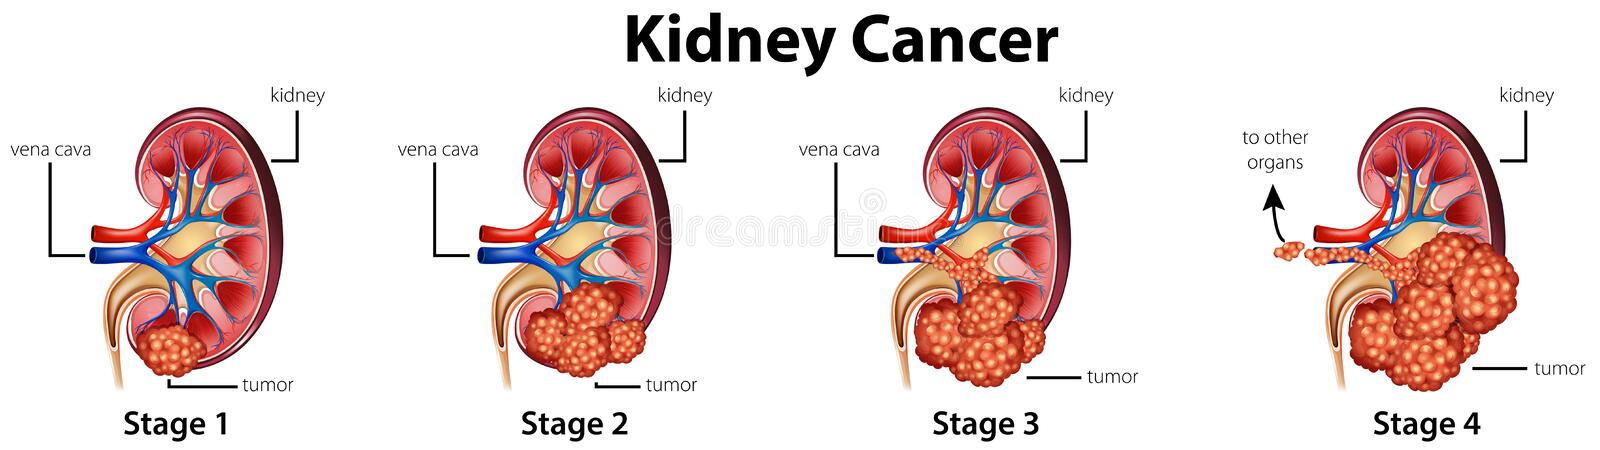 Diagram showing different stages of kidney cancer stock illustration